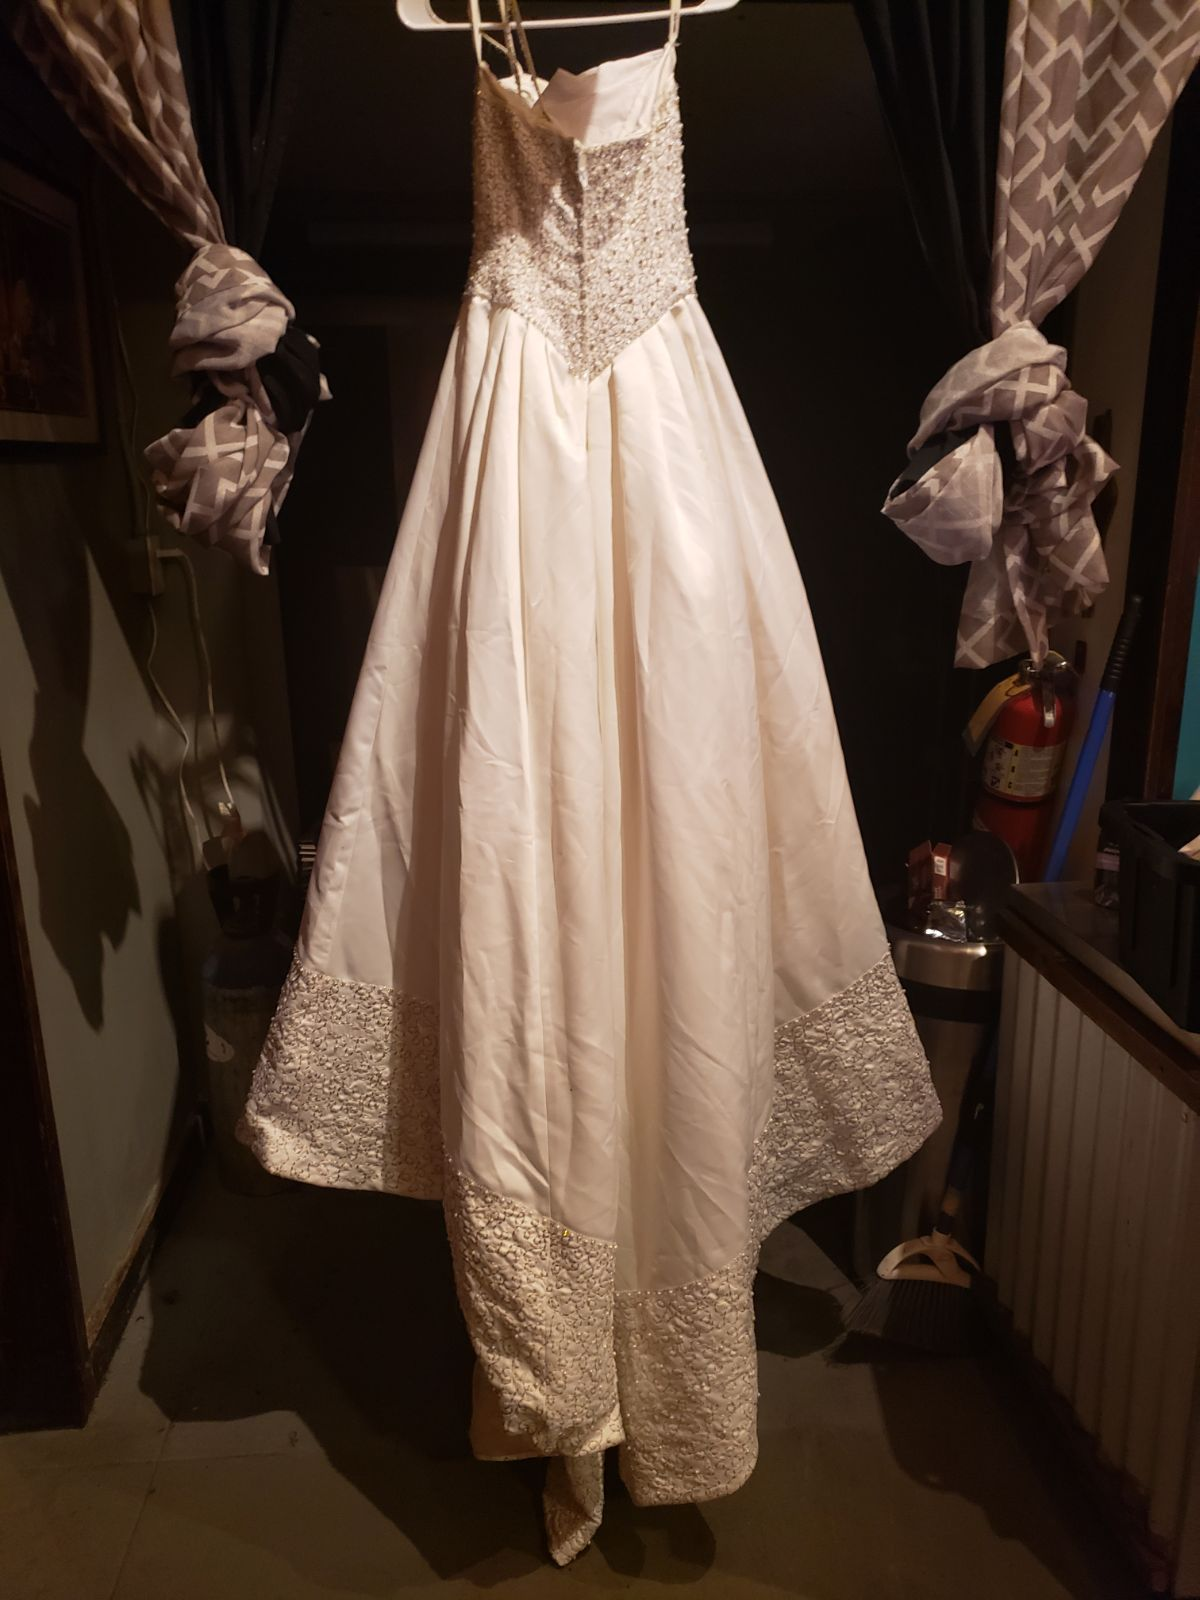 Wedding dress - New never been used.